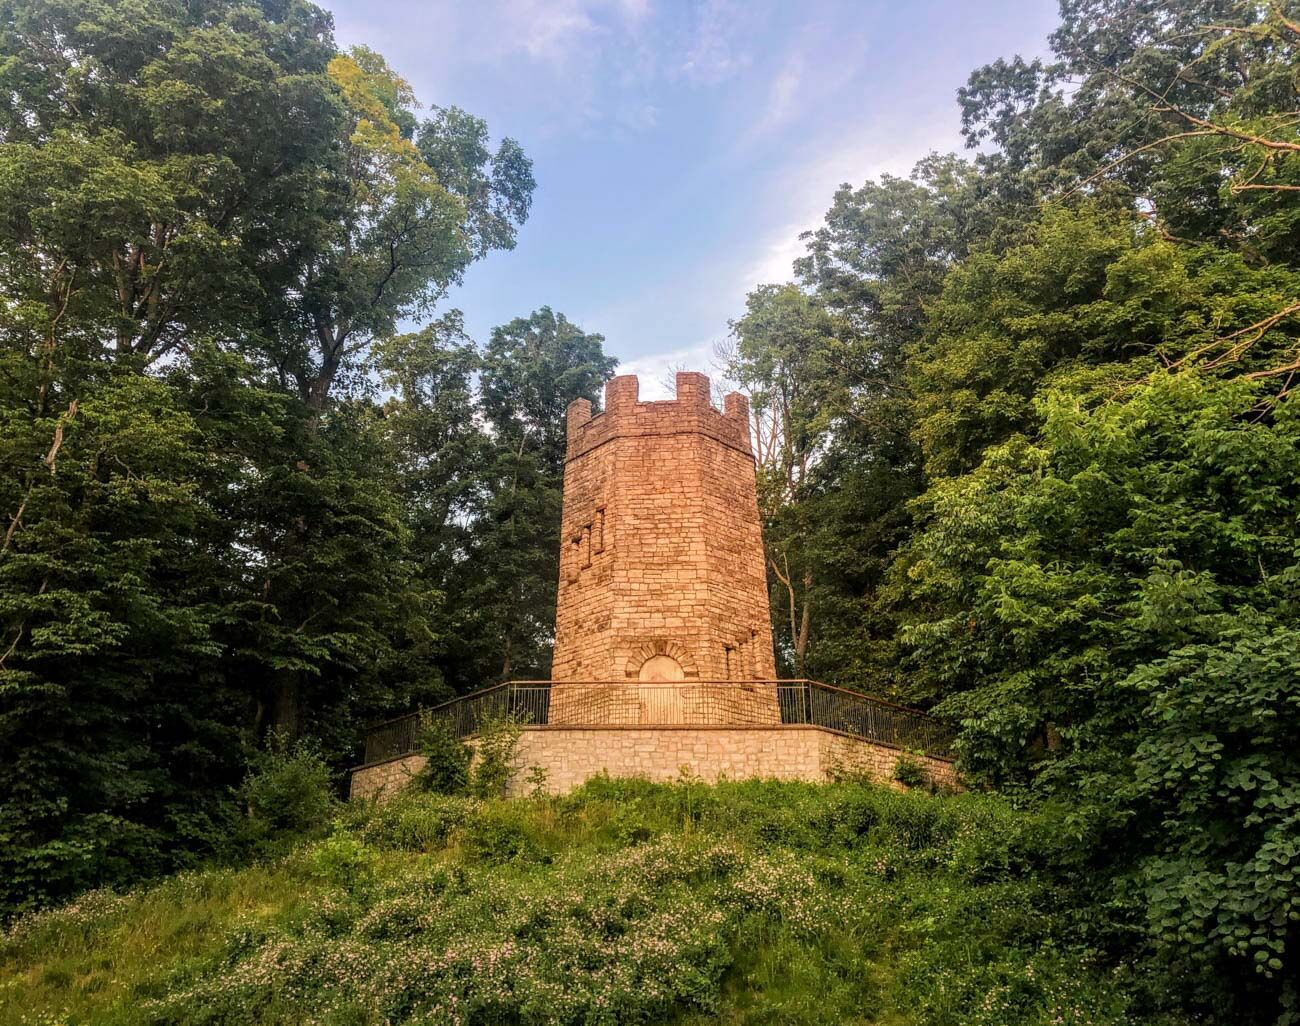 PLACE: Frankenstein's Castle / ADDRESS: 2655 S Patterson Boulevard (Kettering) / The Patterson Tower, also called Frankenstein's Castle, sits in Hills and Dales MetroPark about an hour north in Kettering, OH. The structure features a turret-shaped stone lookout and a spooky past. / Image: Di Minardi // Published: 10.17.20